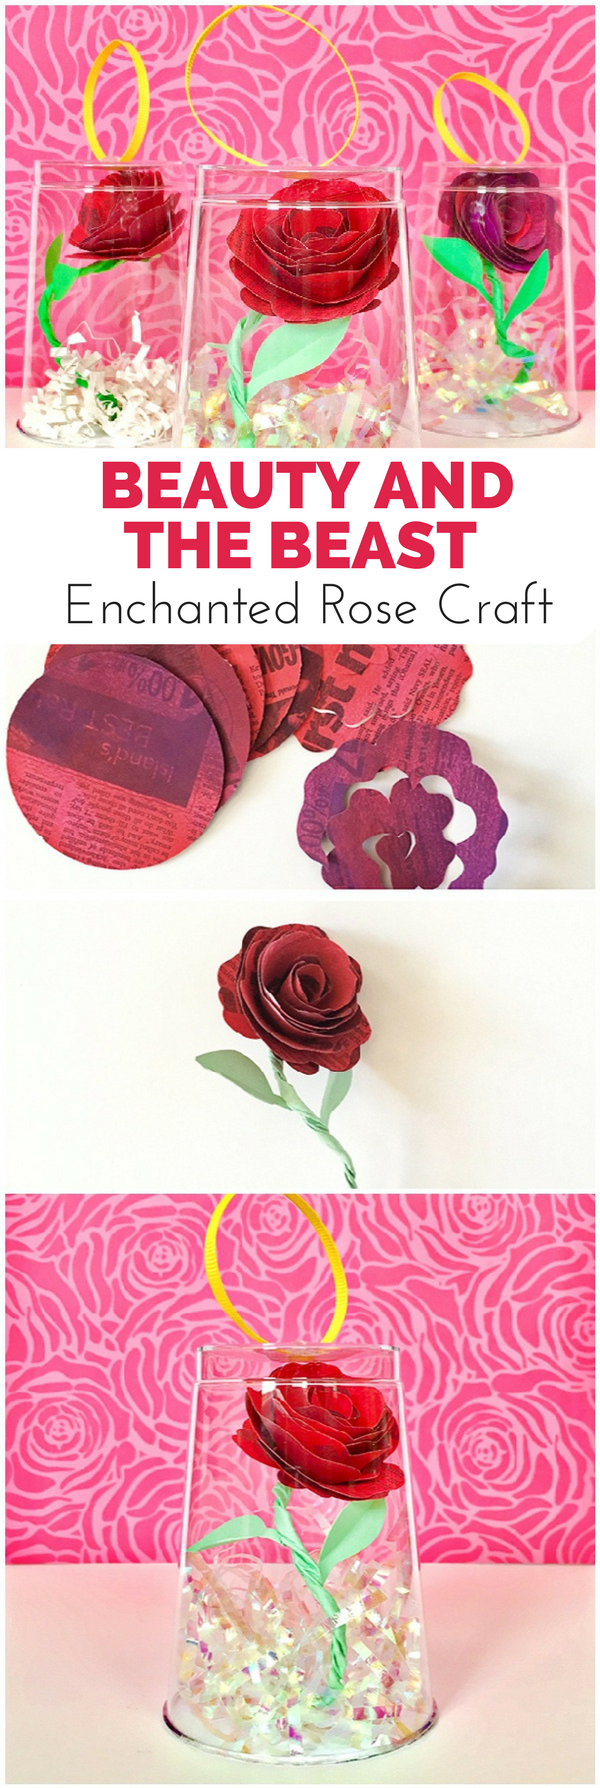 Beauty And The Beast Enchanted Rose Craft Rainy Day Activities